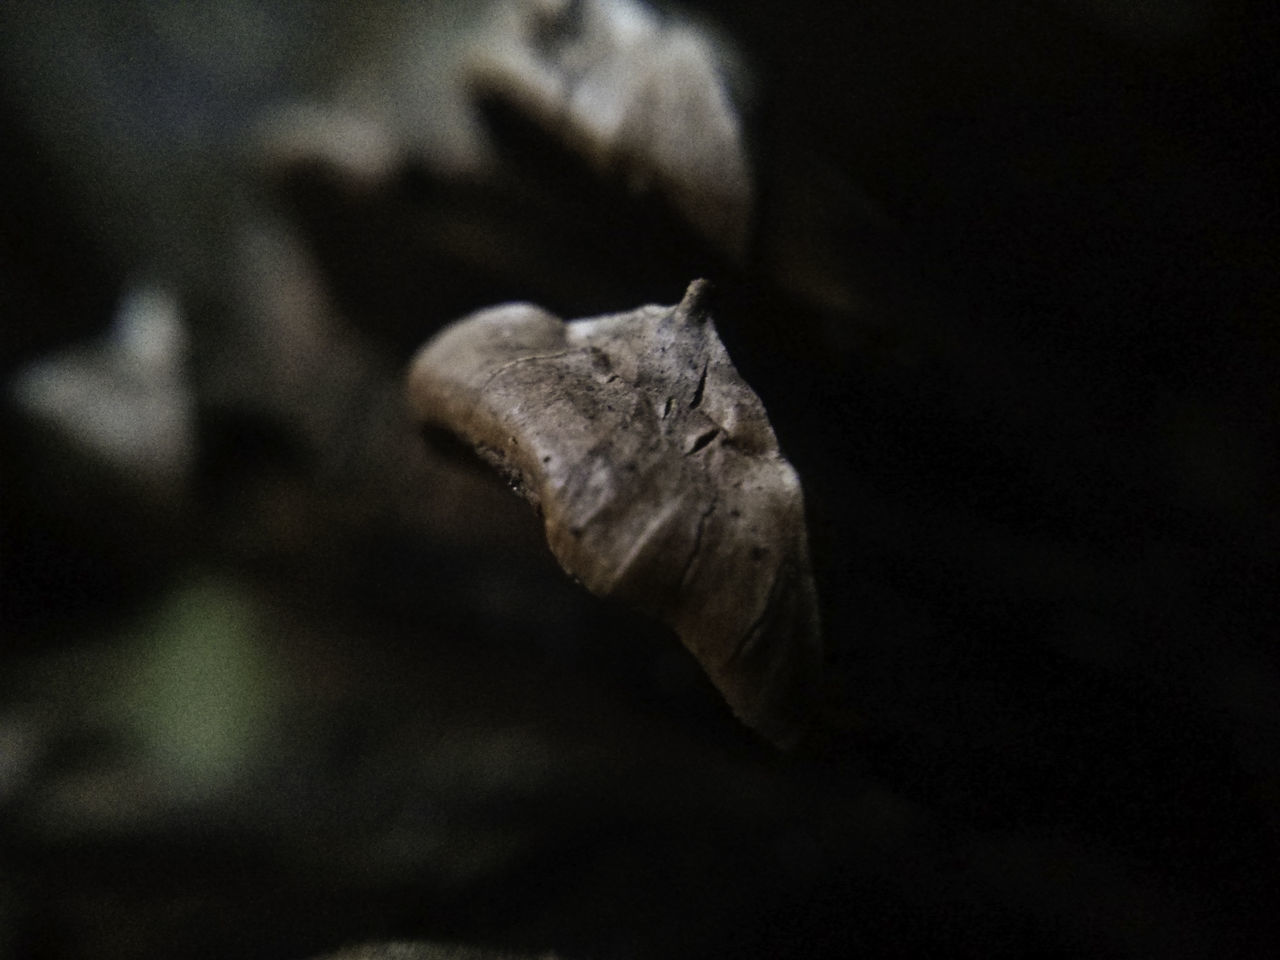 Macro of a scale from a Pinus elliottii pine cone. Botany Brown Close-up Day Detail Ecology Focus On Foreground Full Frame Macro Mystery Nature Nature Photography Outdoors Pine Pine Cone Selective Focus Sharp Textured